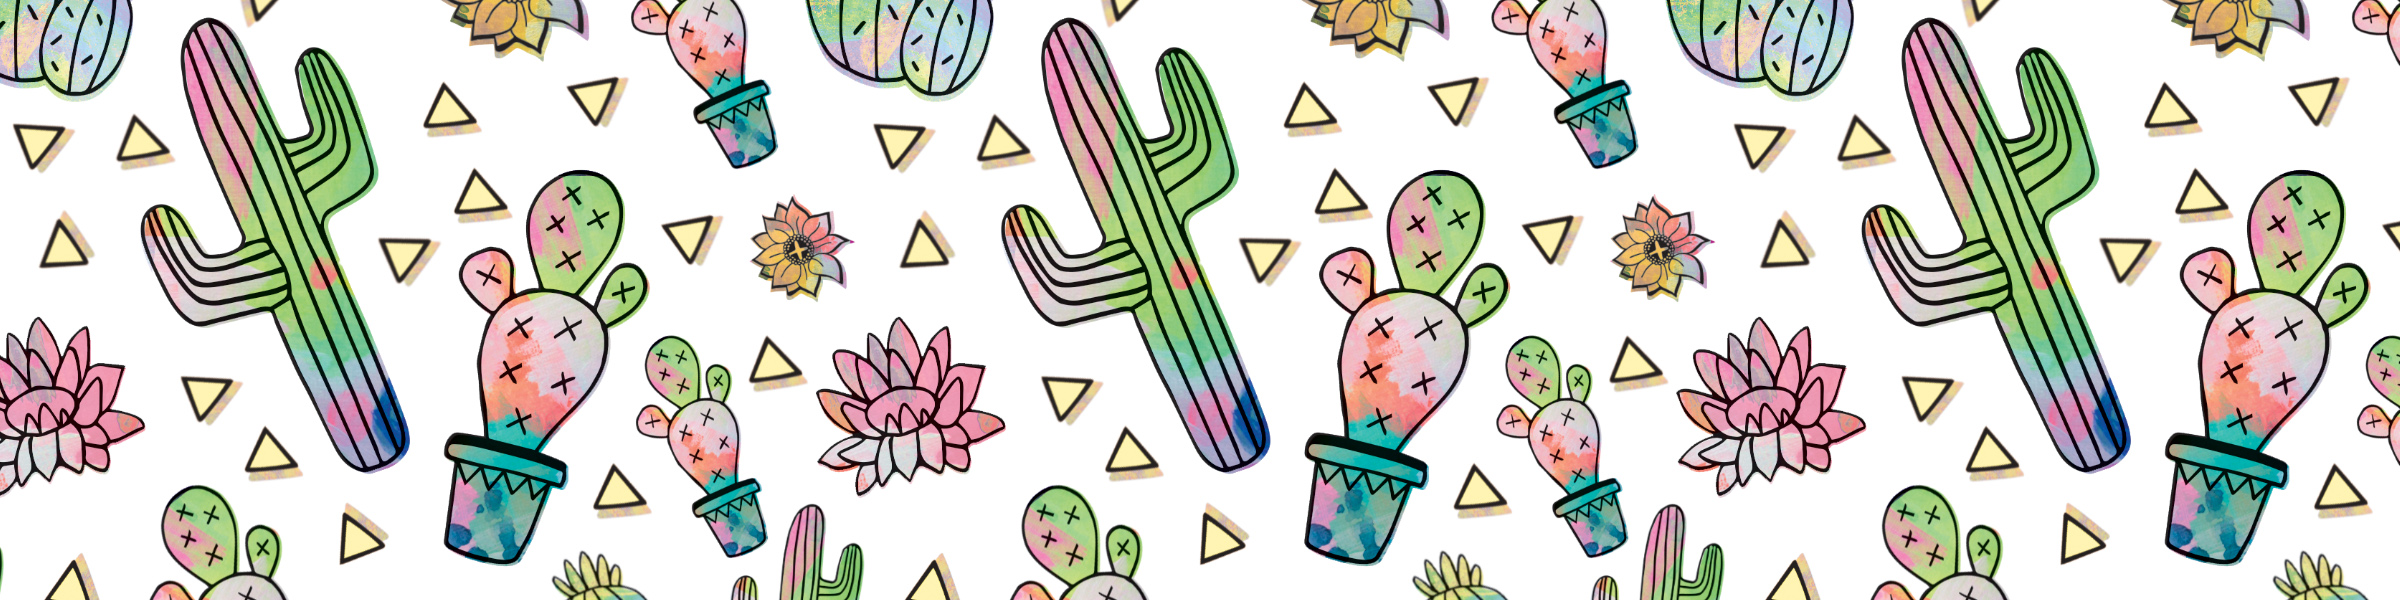 So Very Cassie - Fun Quirky Homeware and Accessories